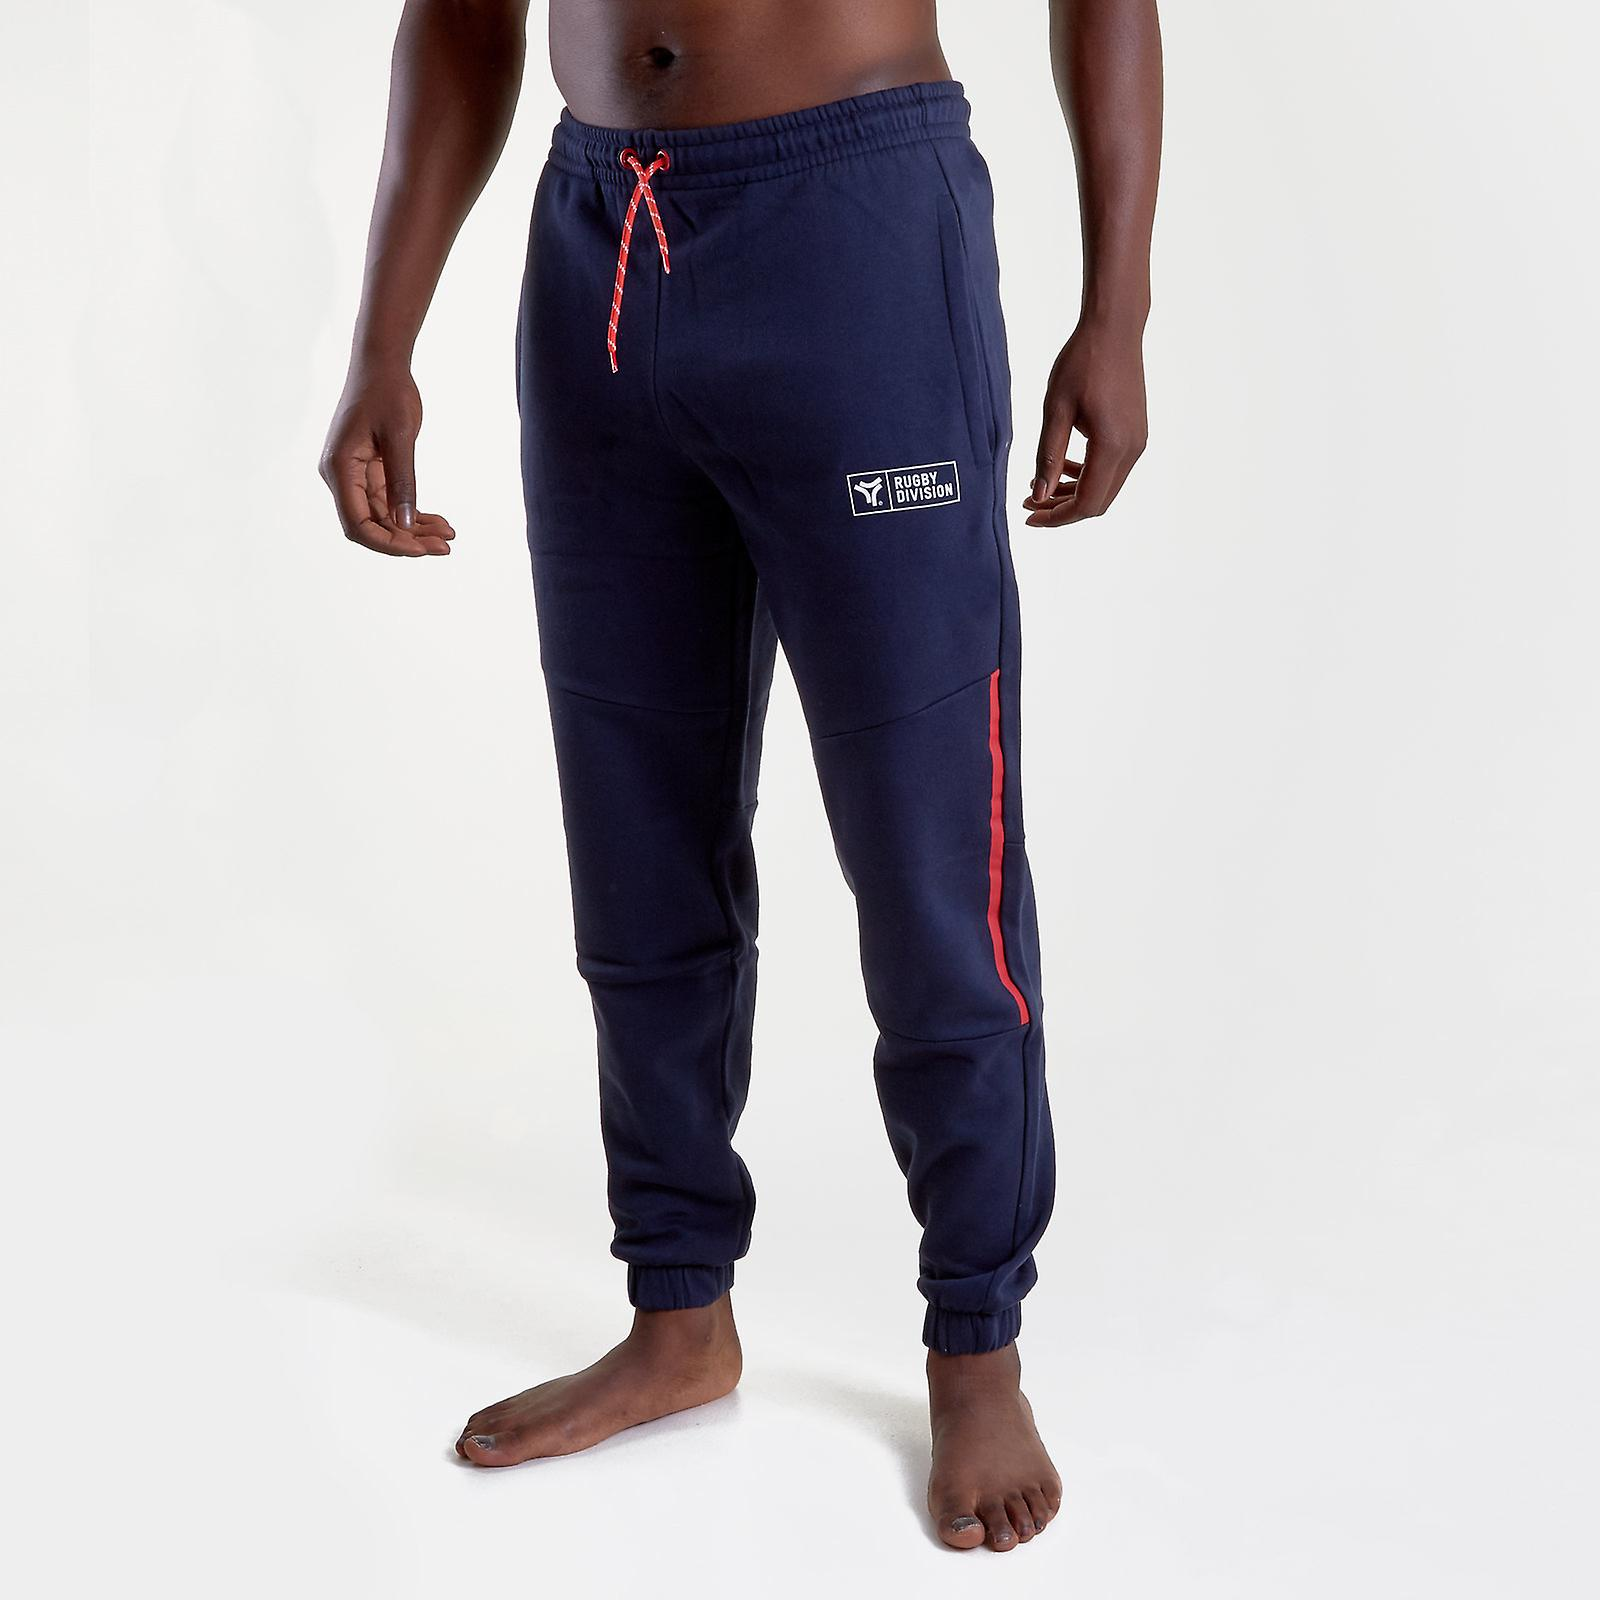 Rugby Division Pharcyde Rugby Training Pants